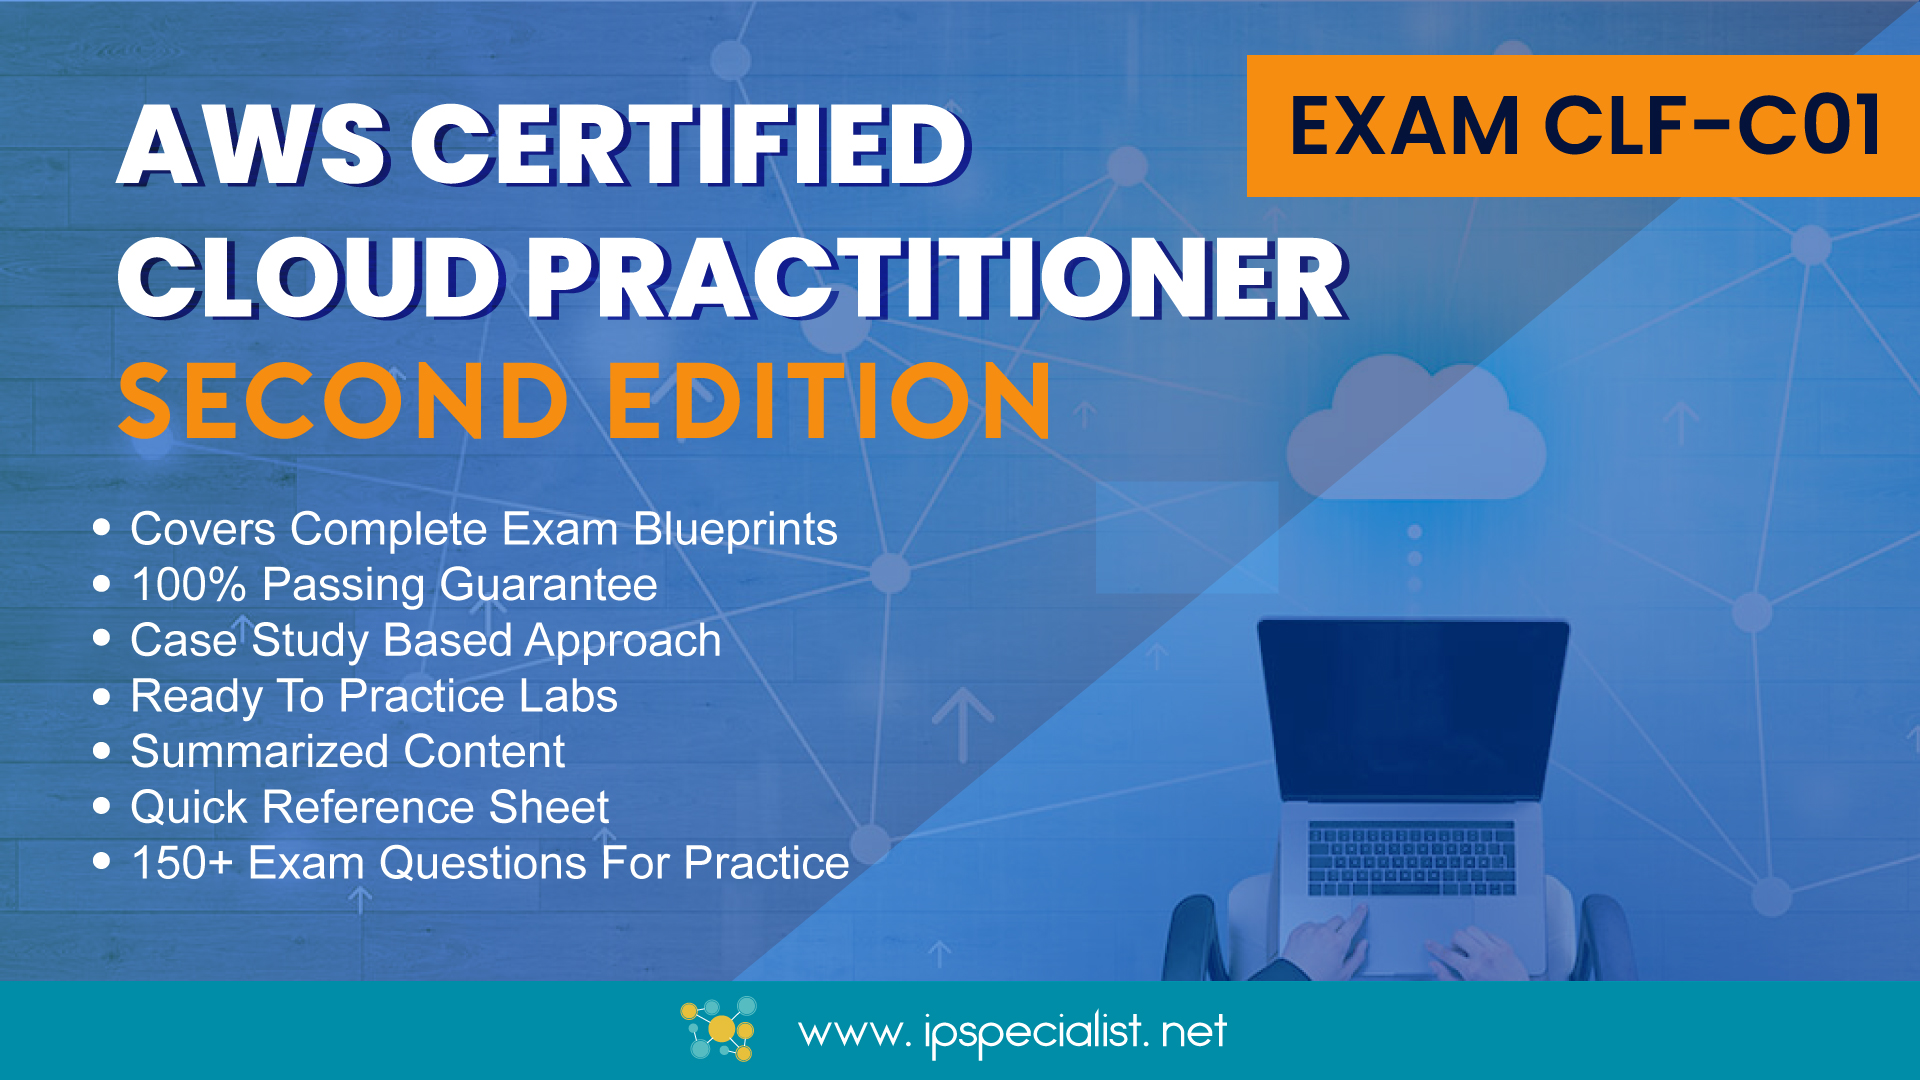 AWS Certified Cloud Practitioner Course